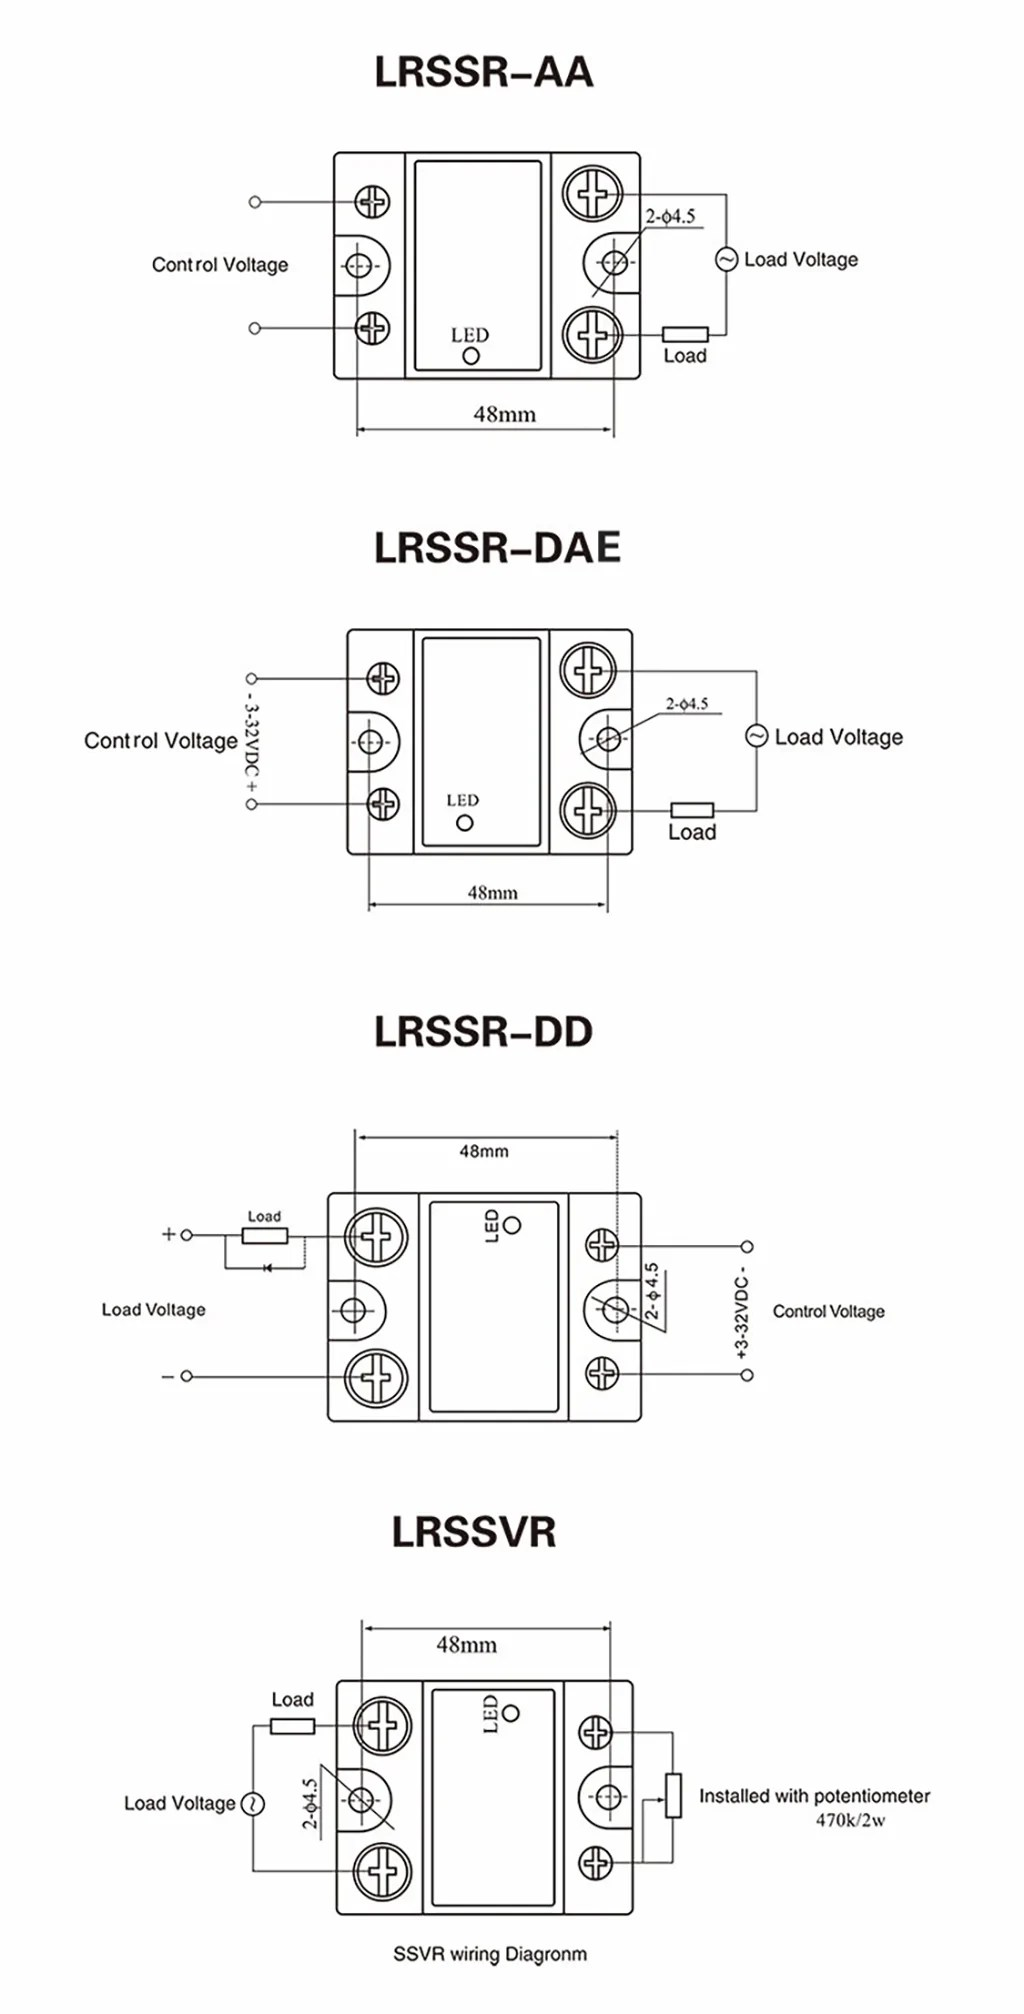 small resolution of connecting diagram lrssr